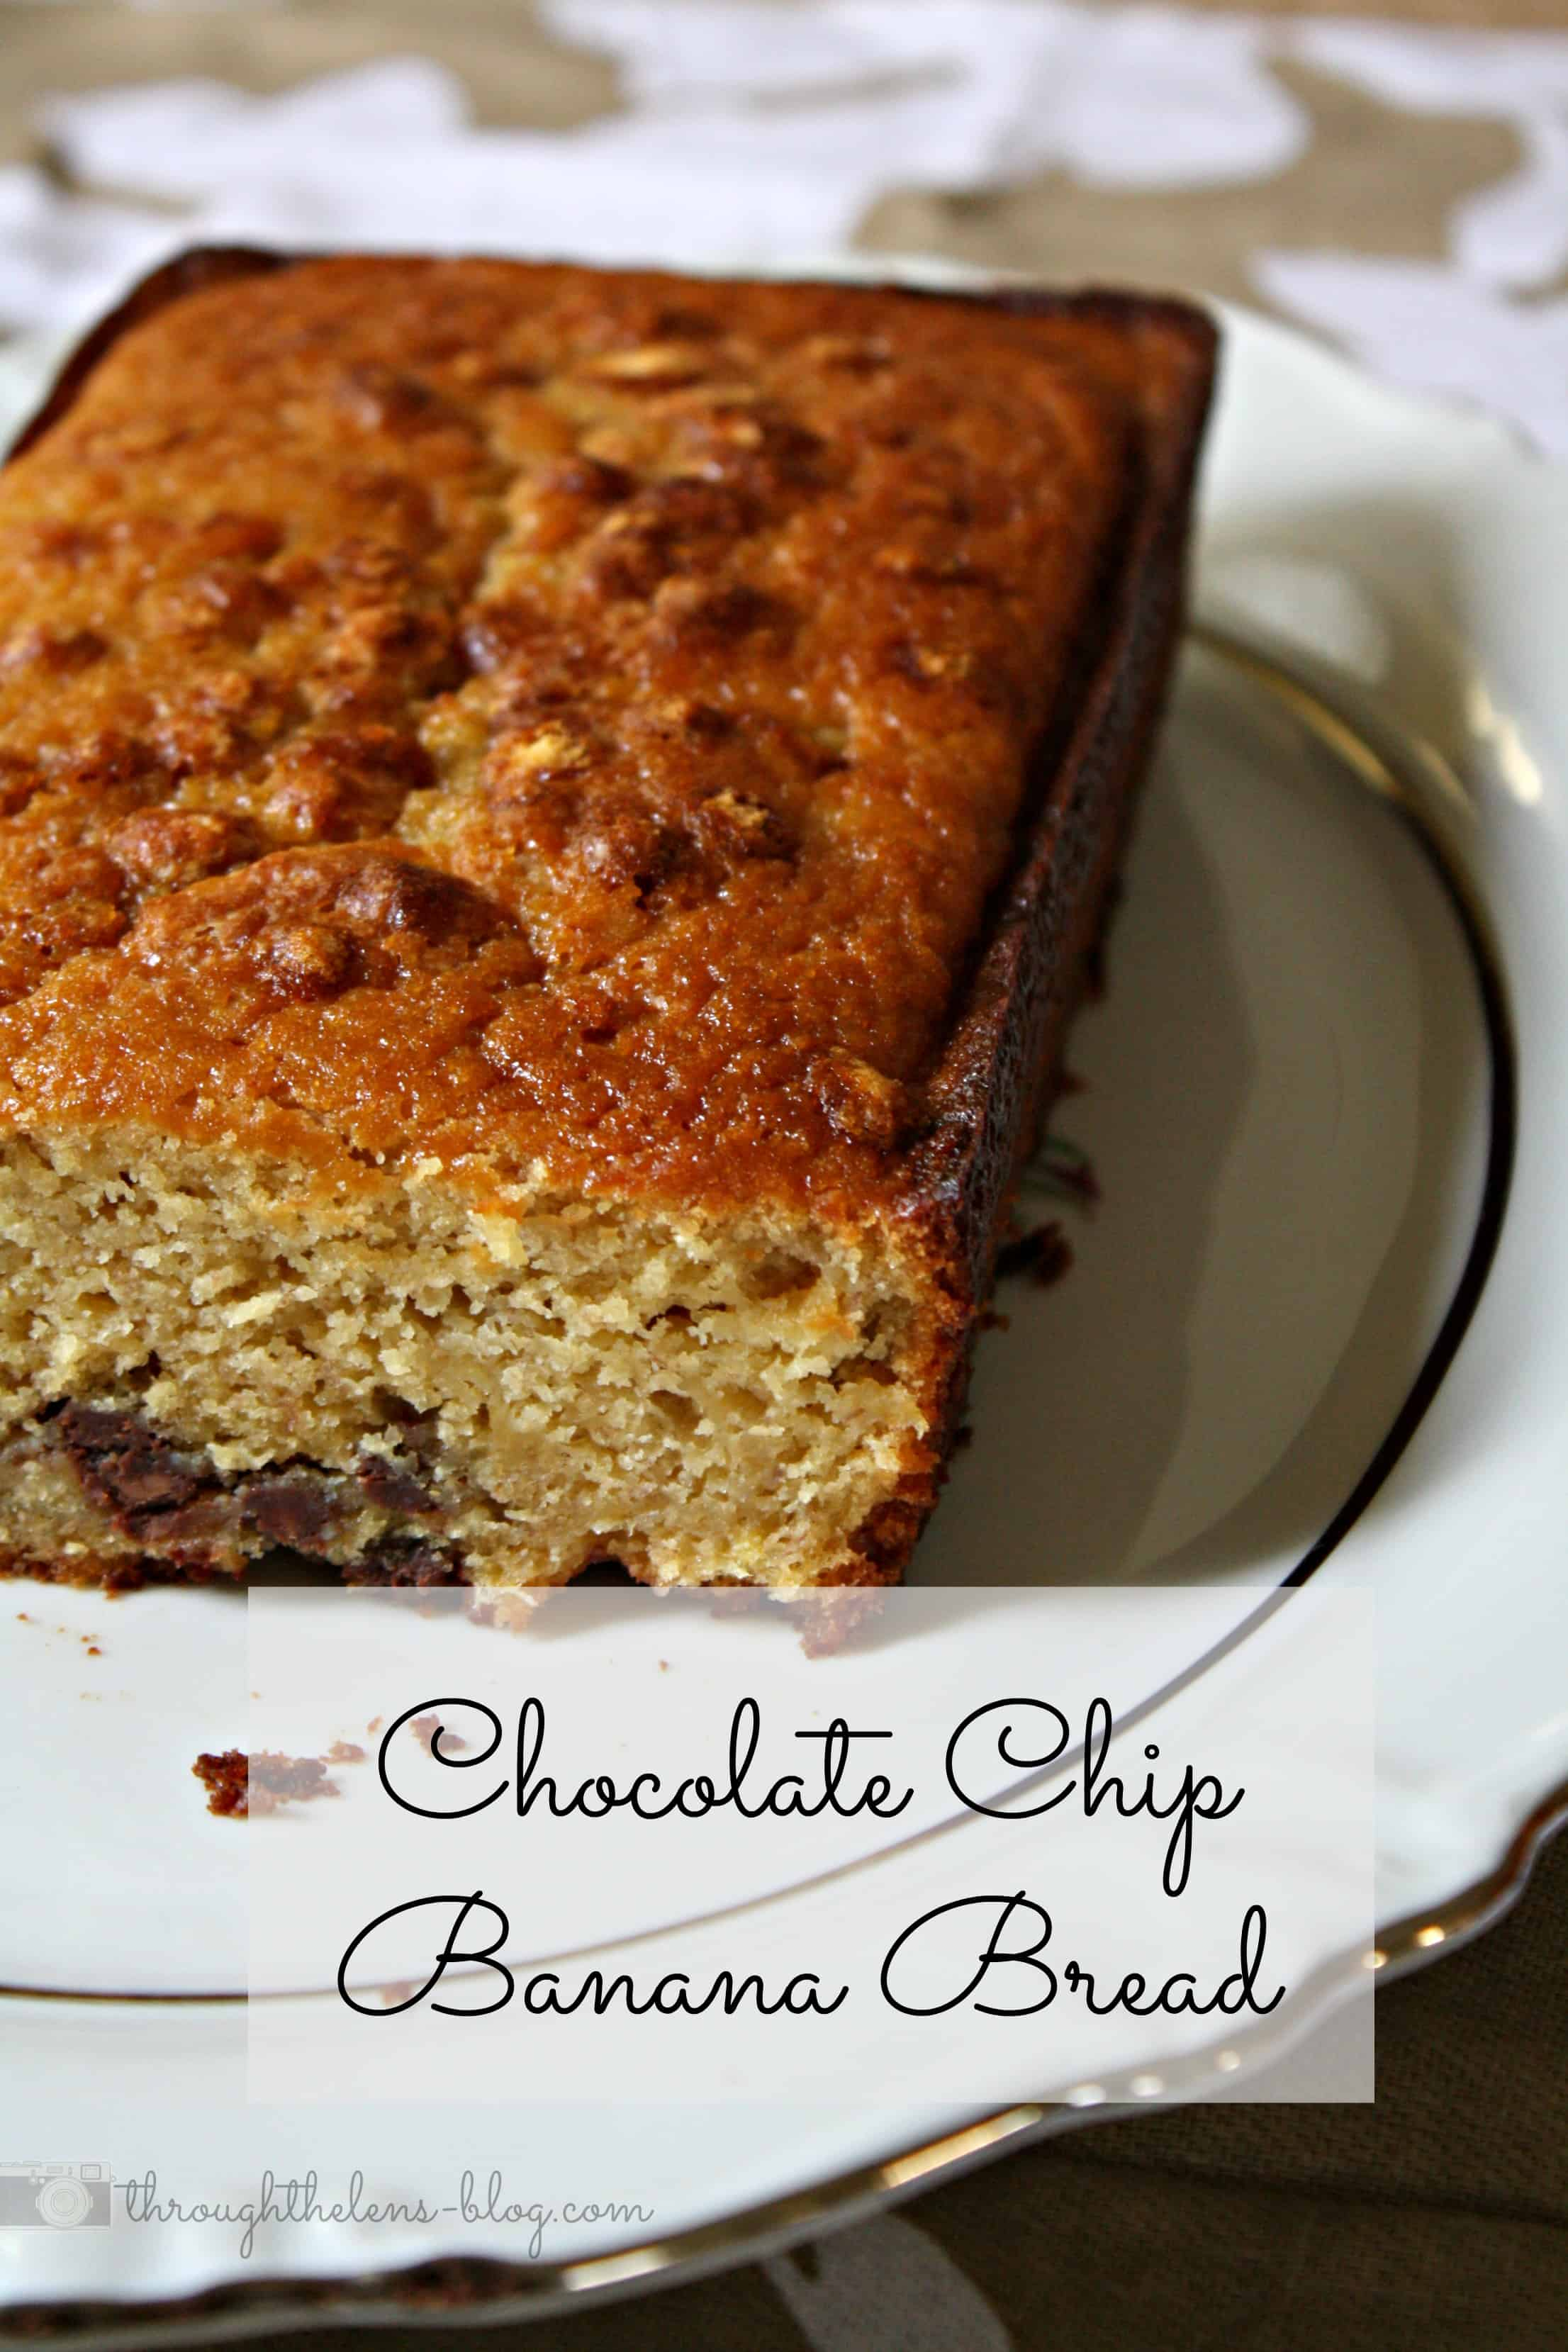 Chocolate Chip Banana Bread - Domestically Speaking